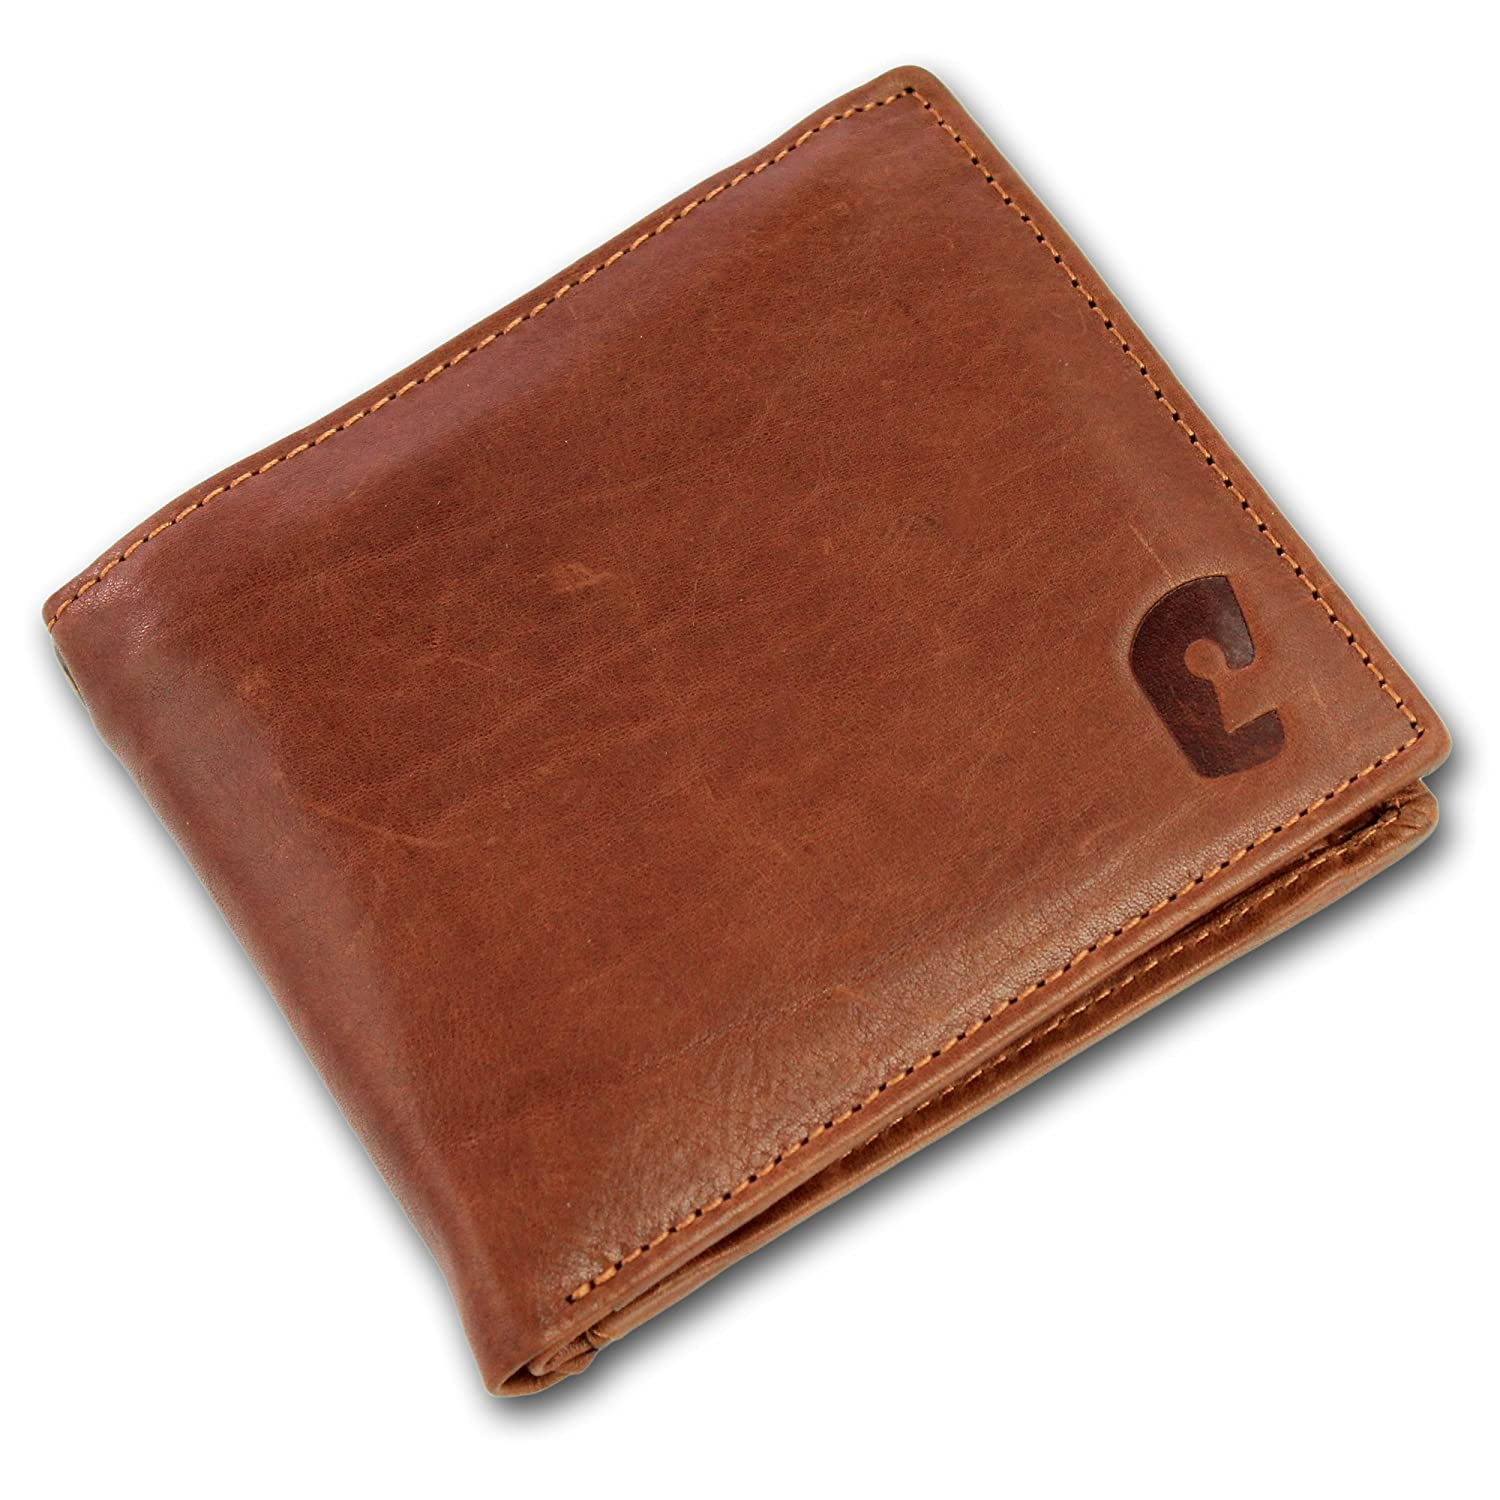 127e773911d Safekeepers Leather Mens Wallet - RFID Blocking Wallet - Travel Wallet –  Biker wallet - Safe Wallet - Chainwallet - Safe Wallet with Chain options -  Eyeled ...